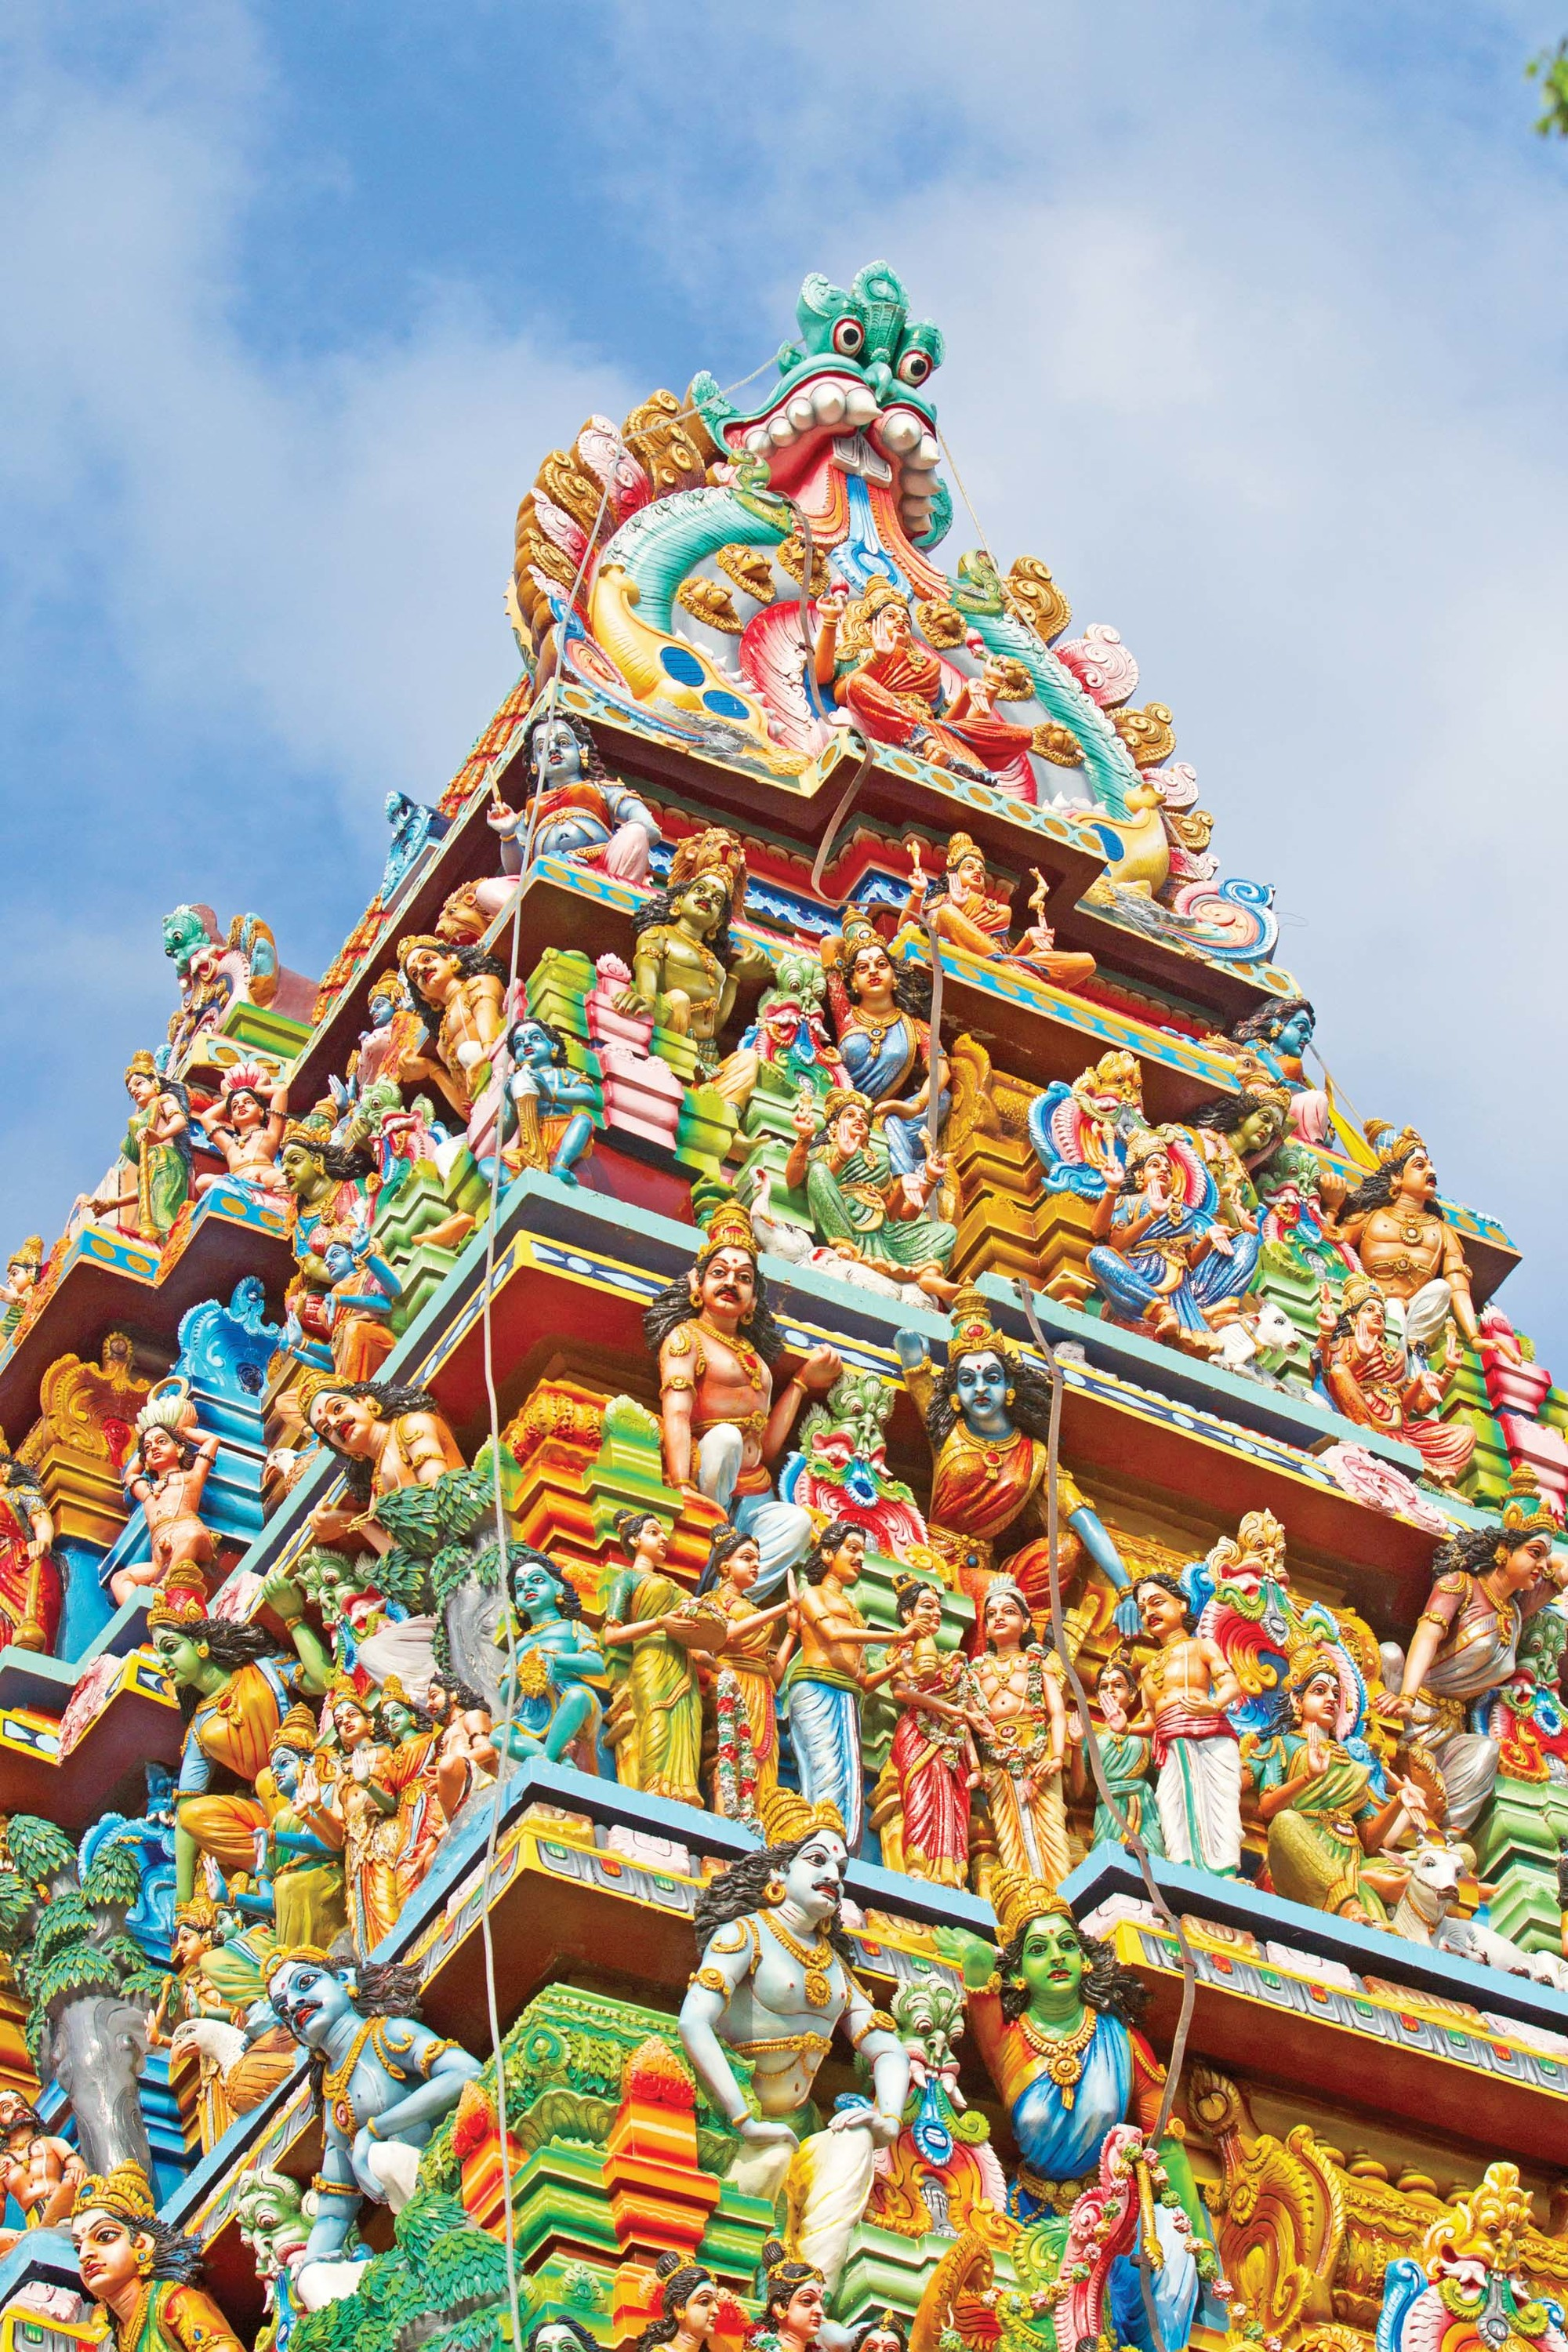 Vattappalai Kannaki Amman Kovil is a kovil in Mullaitivu